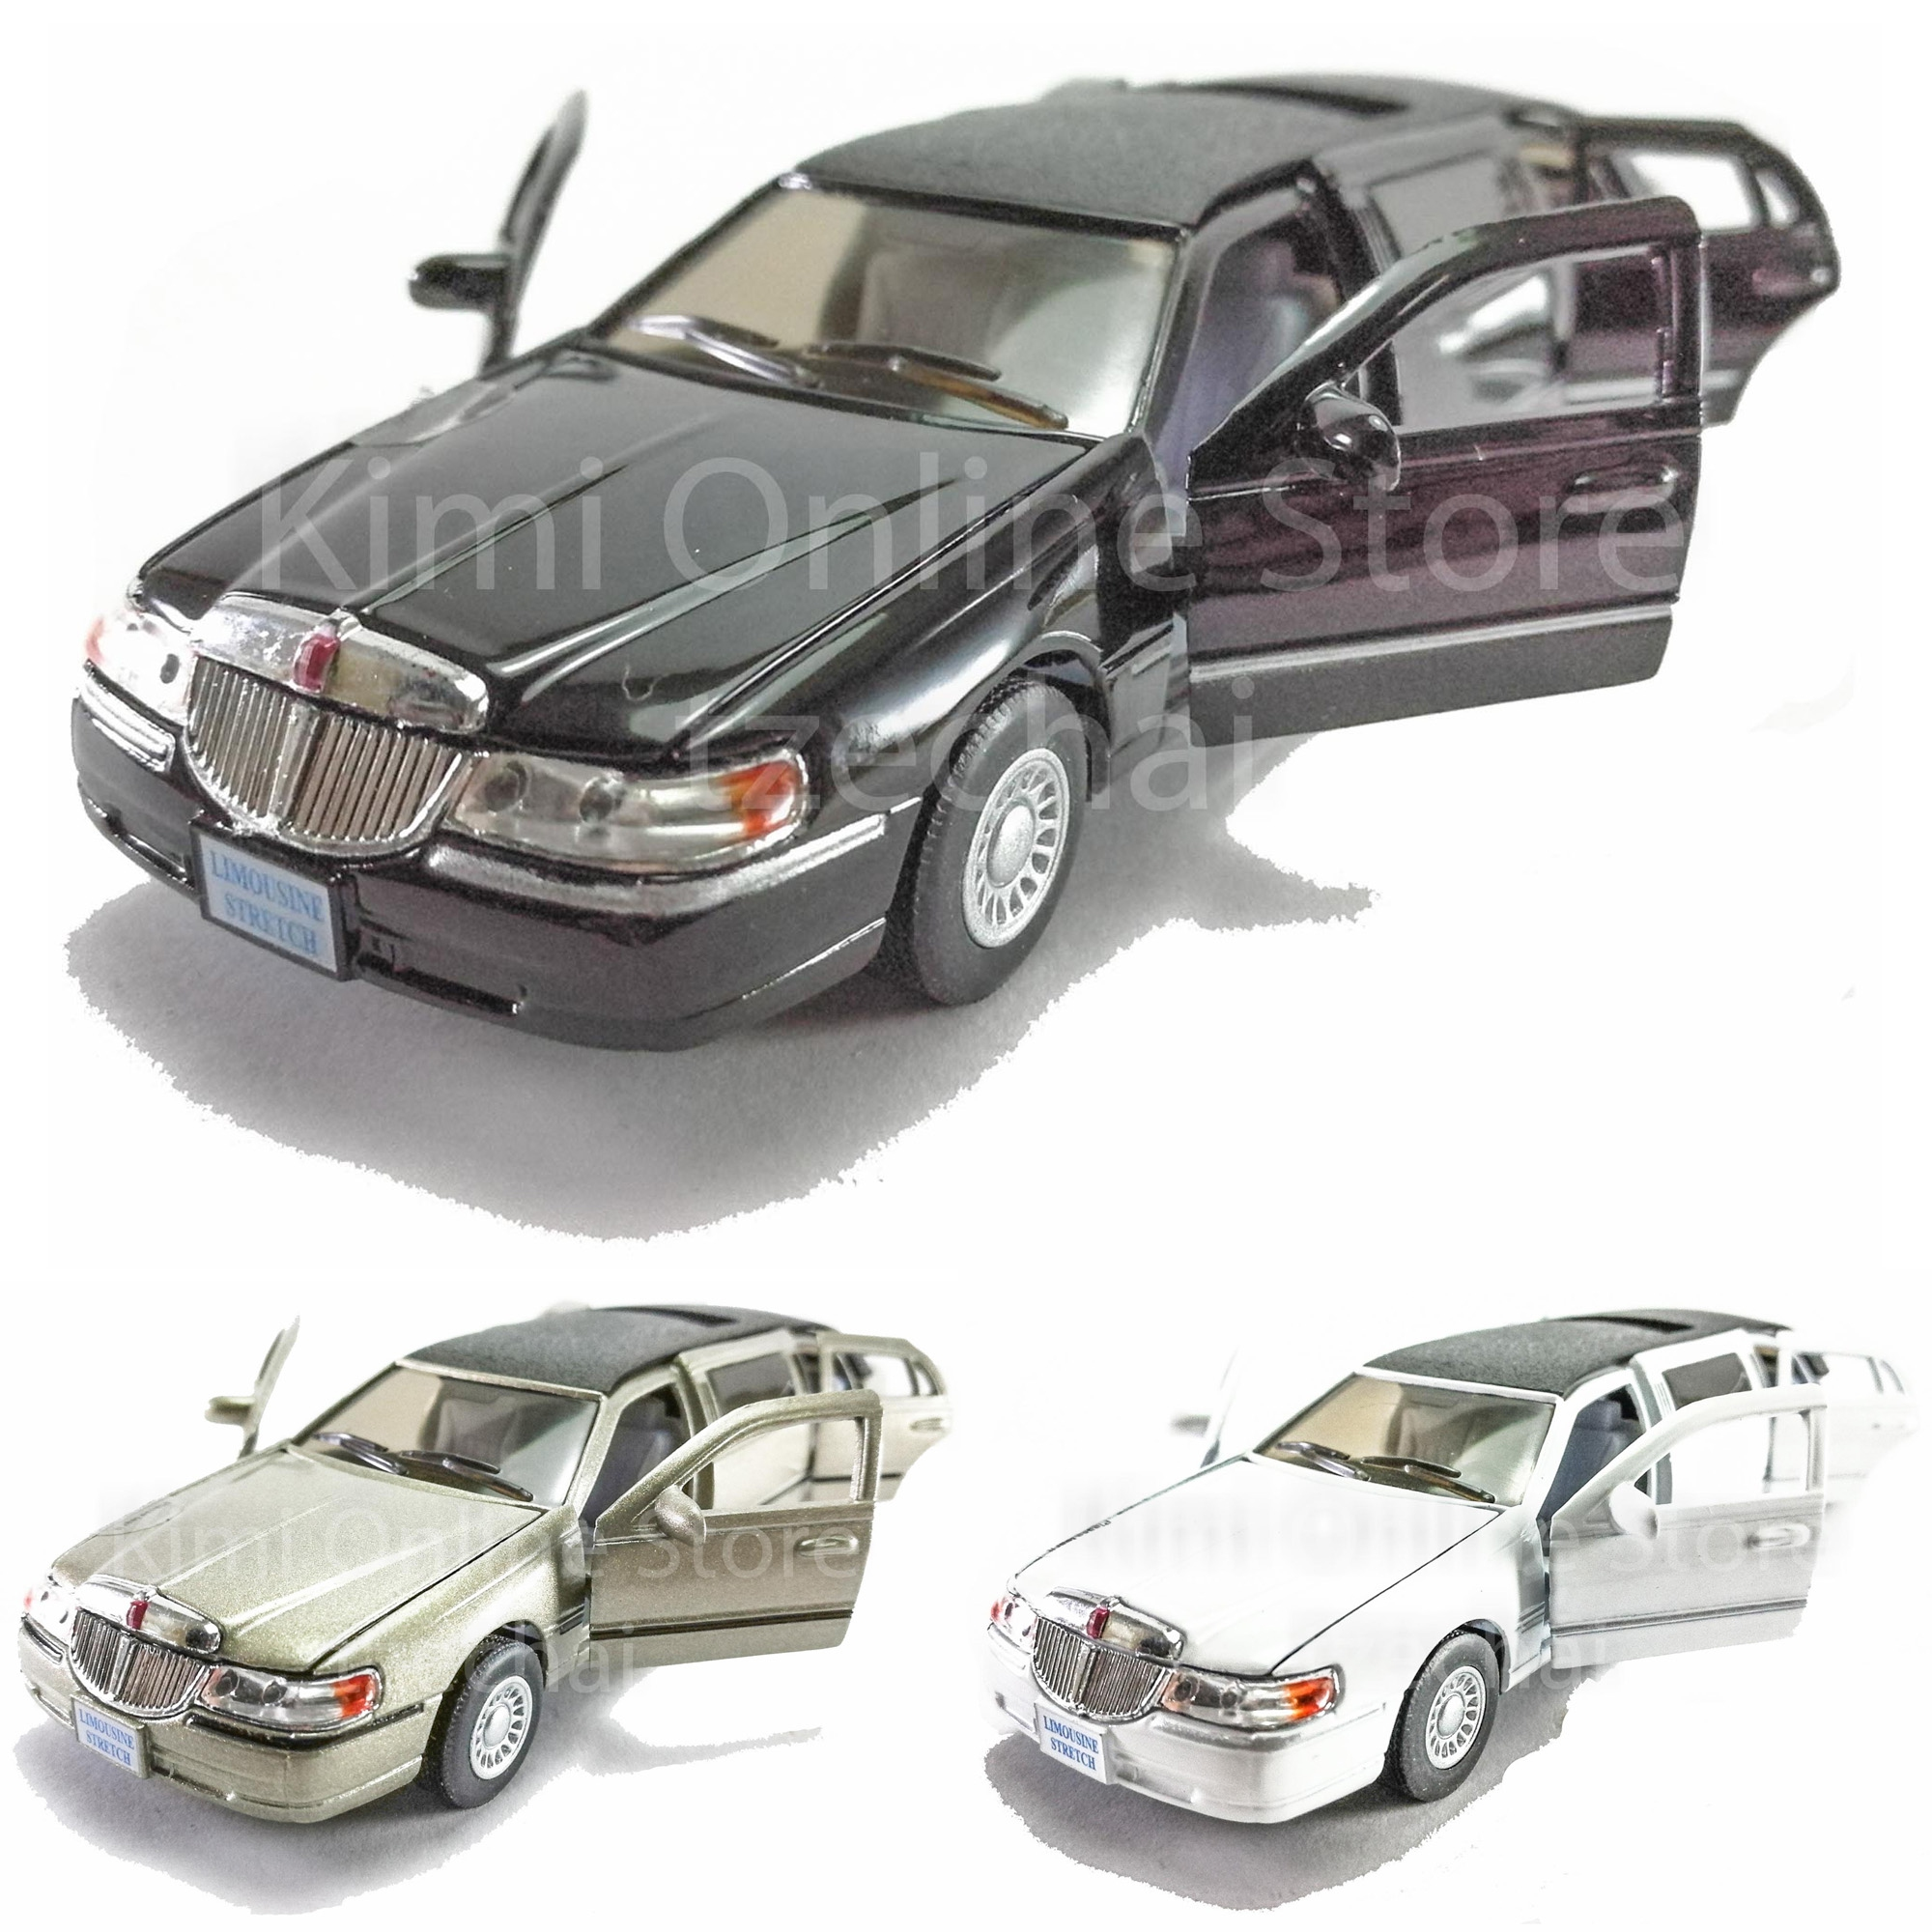 Kinsmart Diecast Car 1 38 1999 Linc End 2 11 2020 11 50 Am